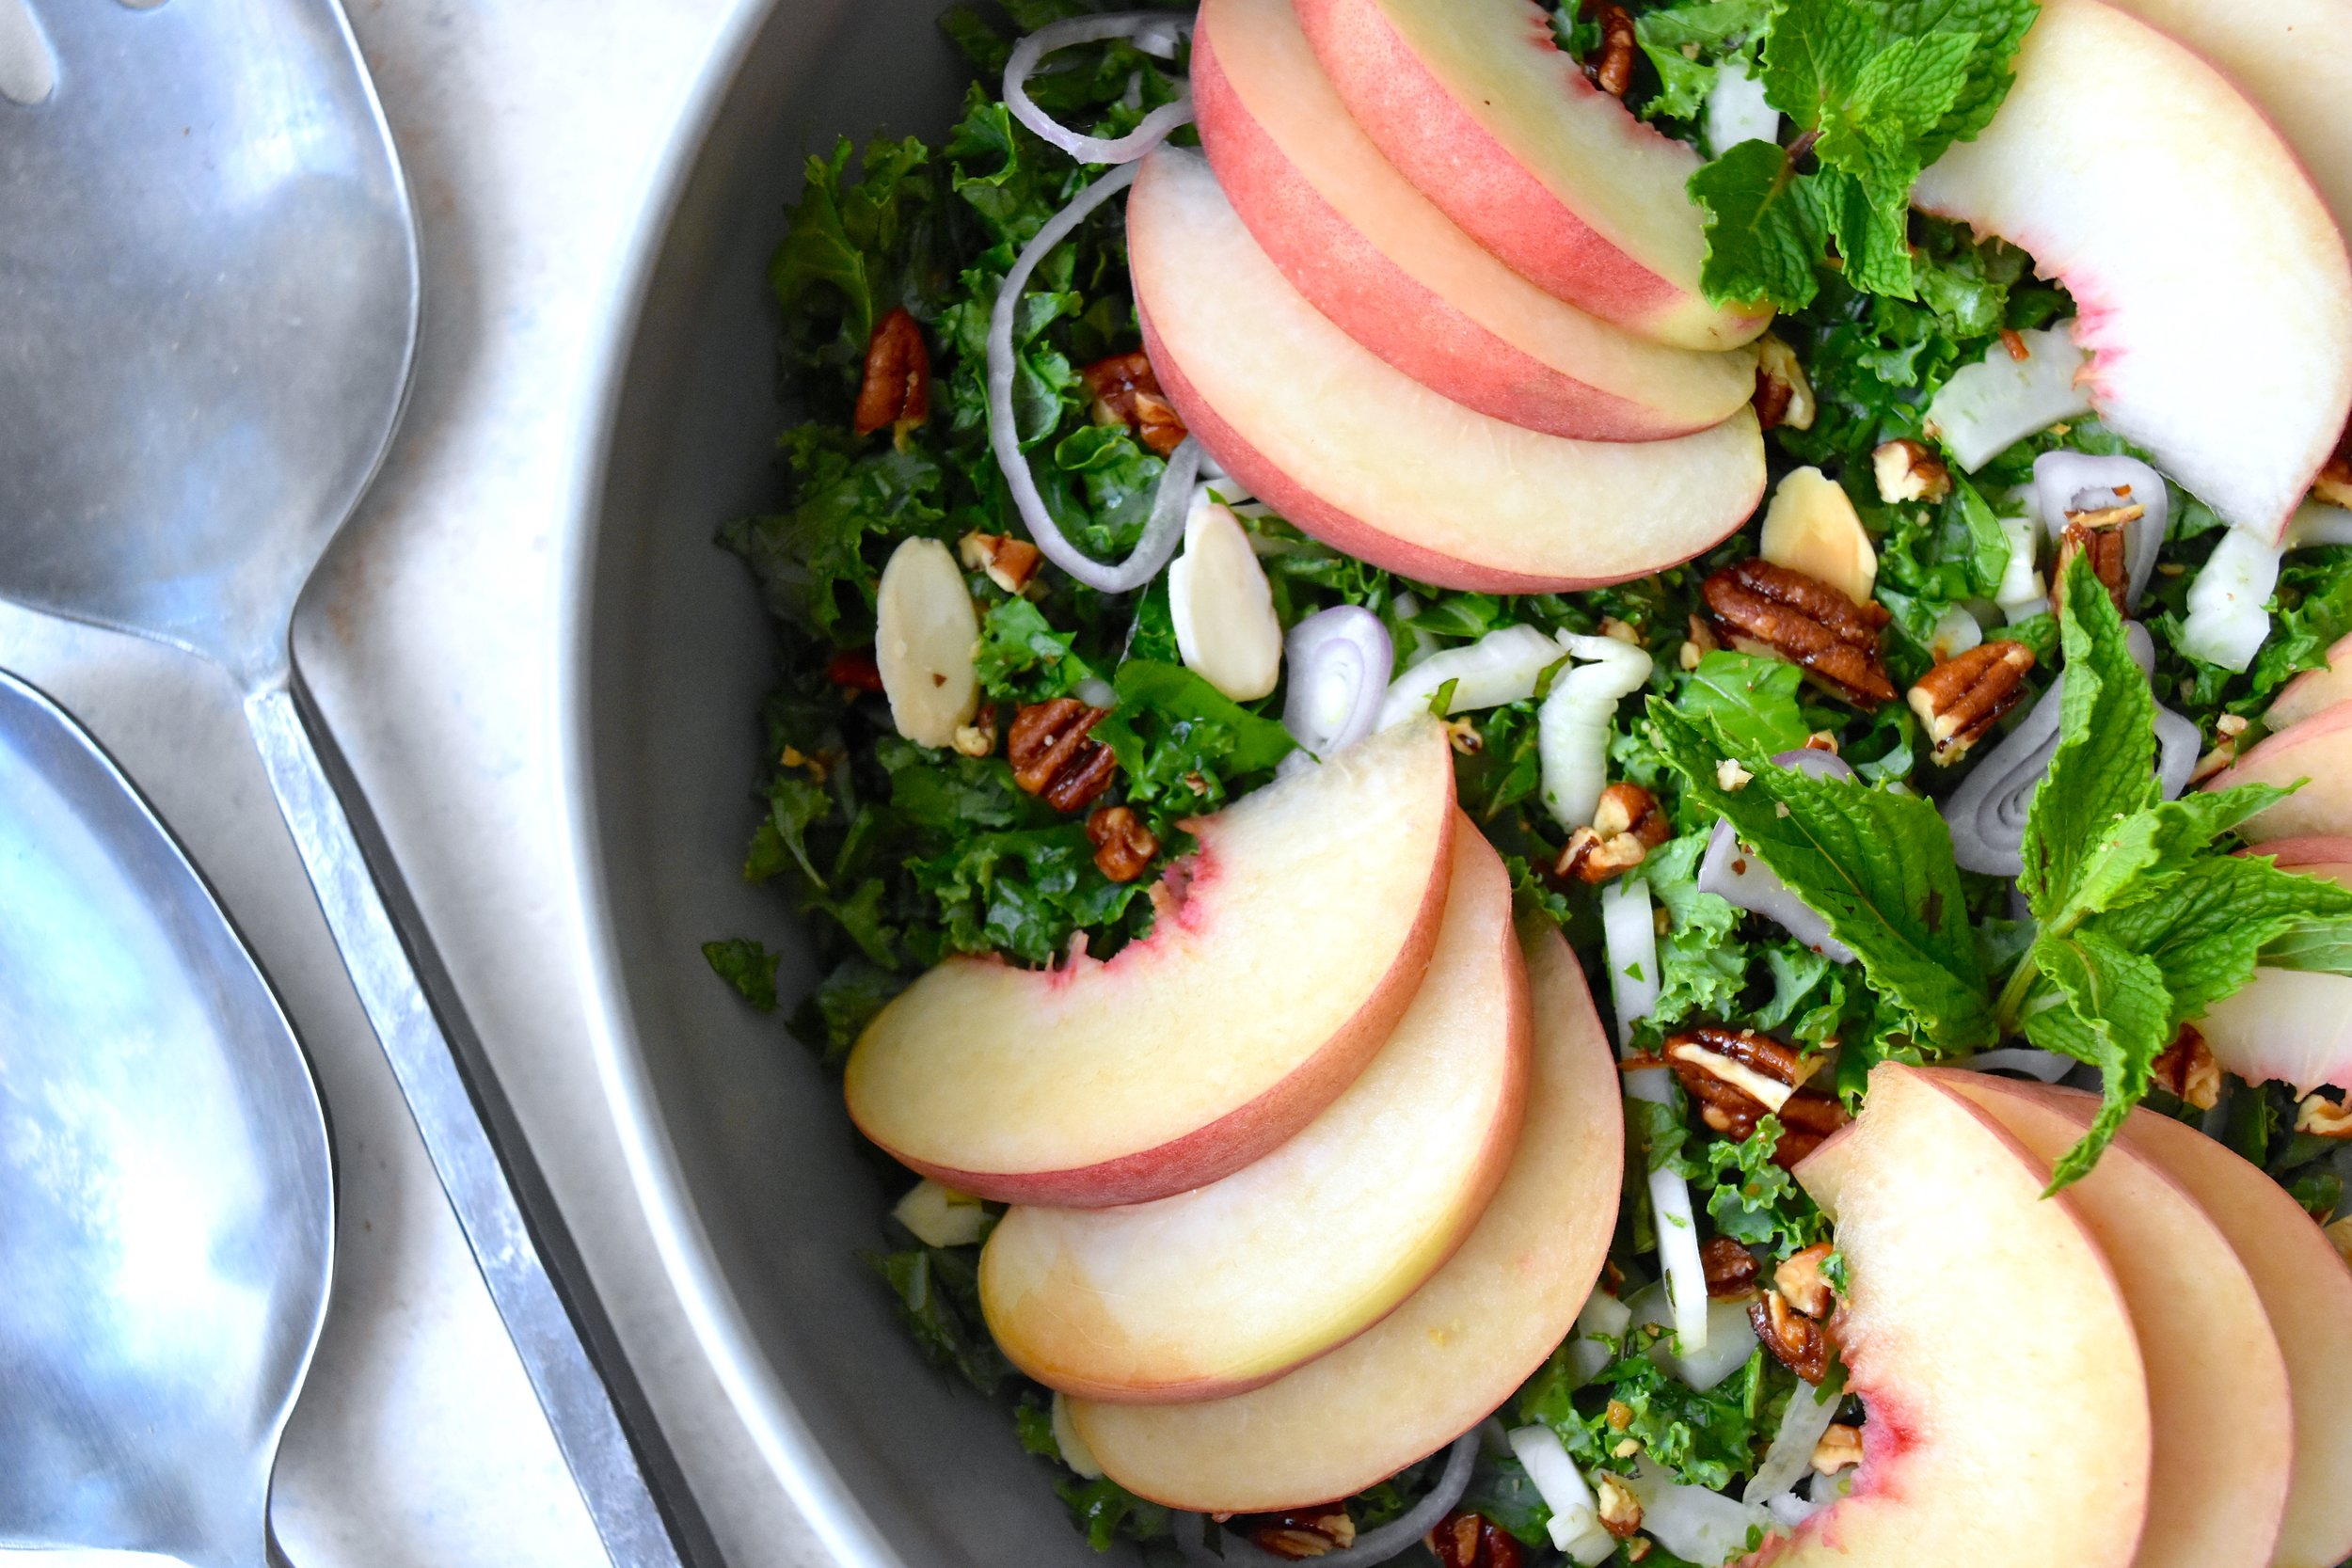 Peach and Kale Salad 2